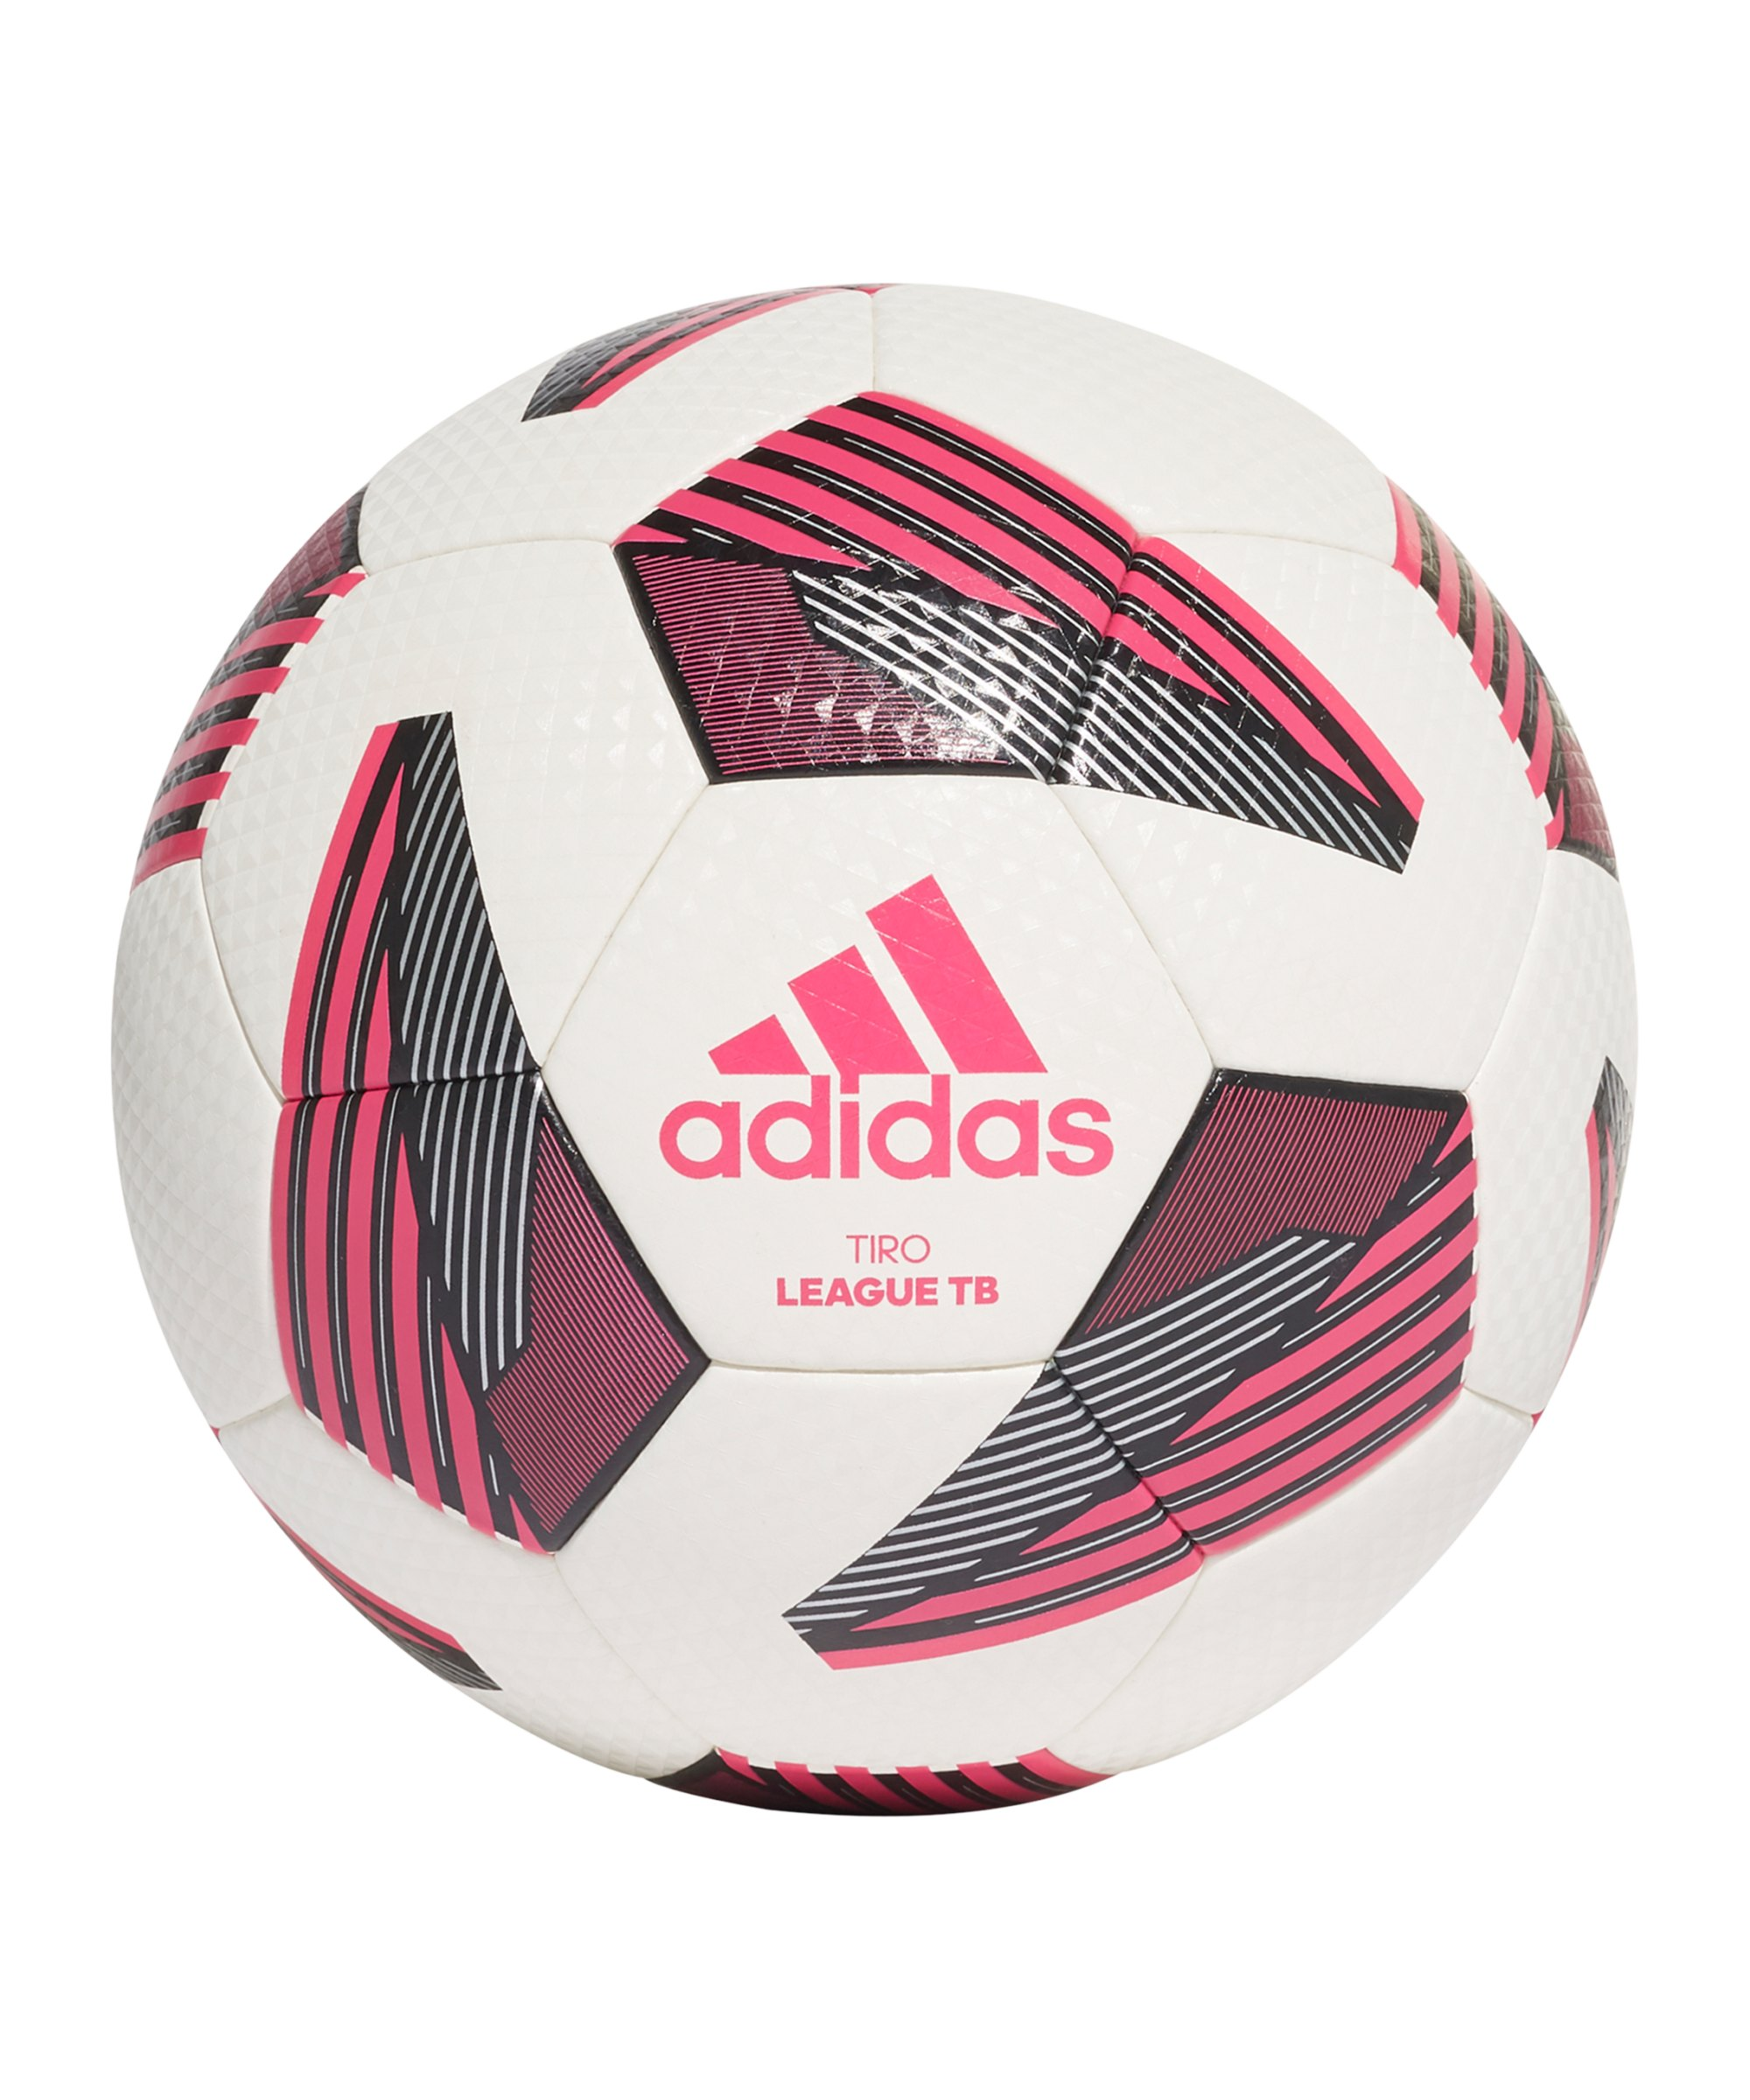 adidas Tiro League Trainingsball Weiss Pink - weiss